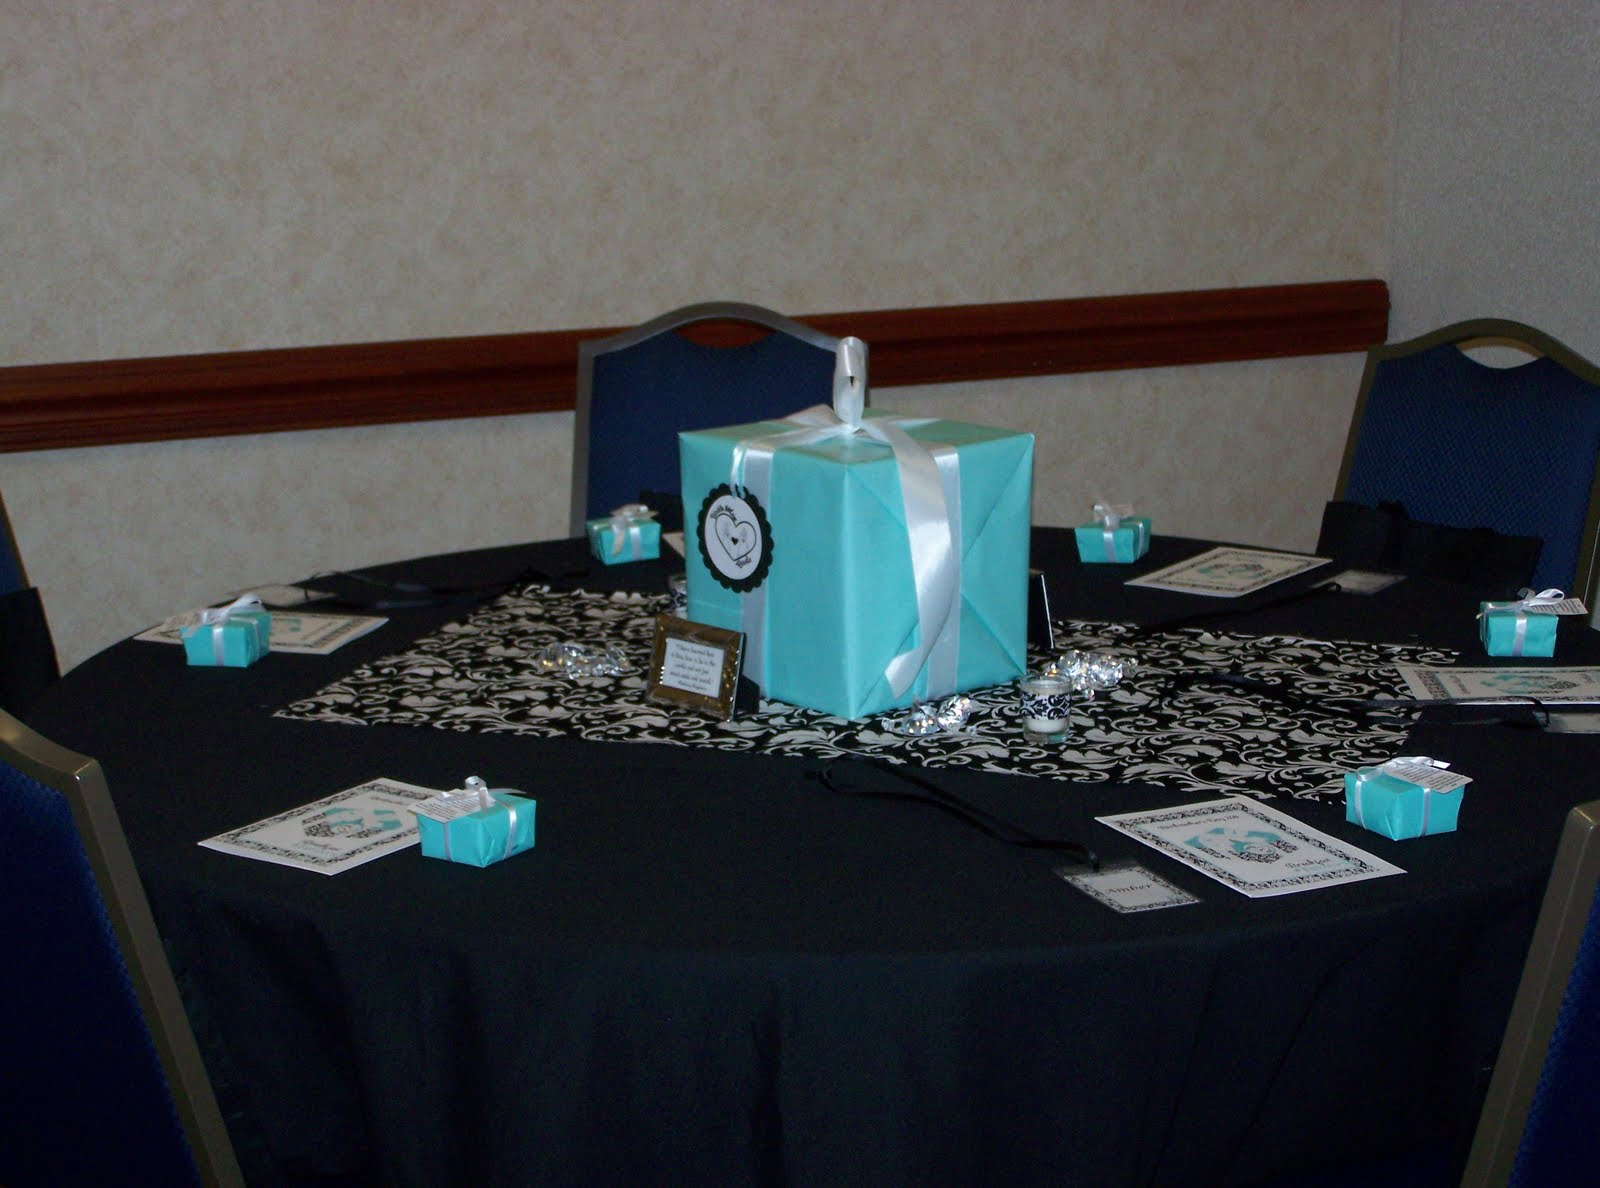 Terrific Tiffany Blue Table Settings Images - Best Image Engine . & Surprising Black And Blue Table Setting Gallery - Best Image Engine ...